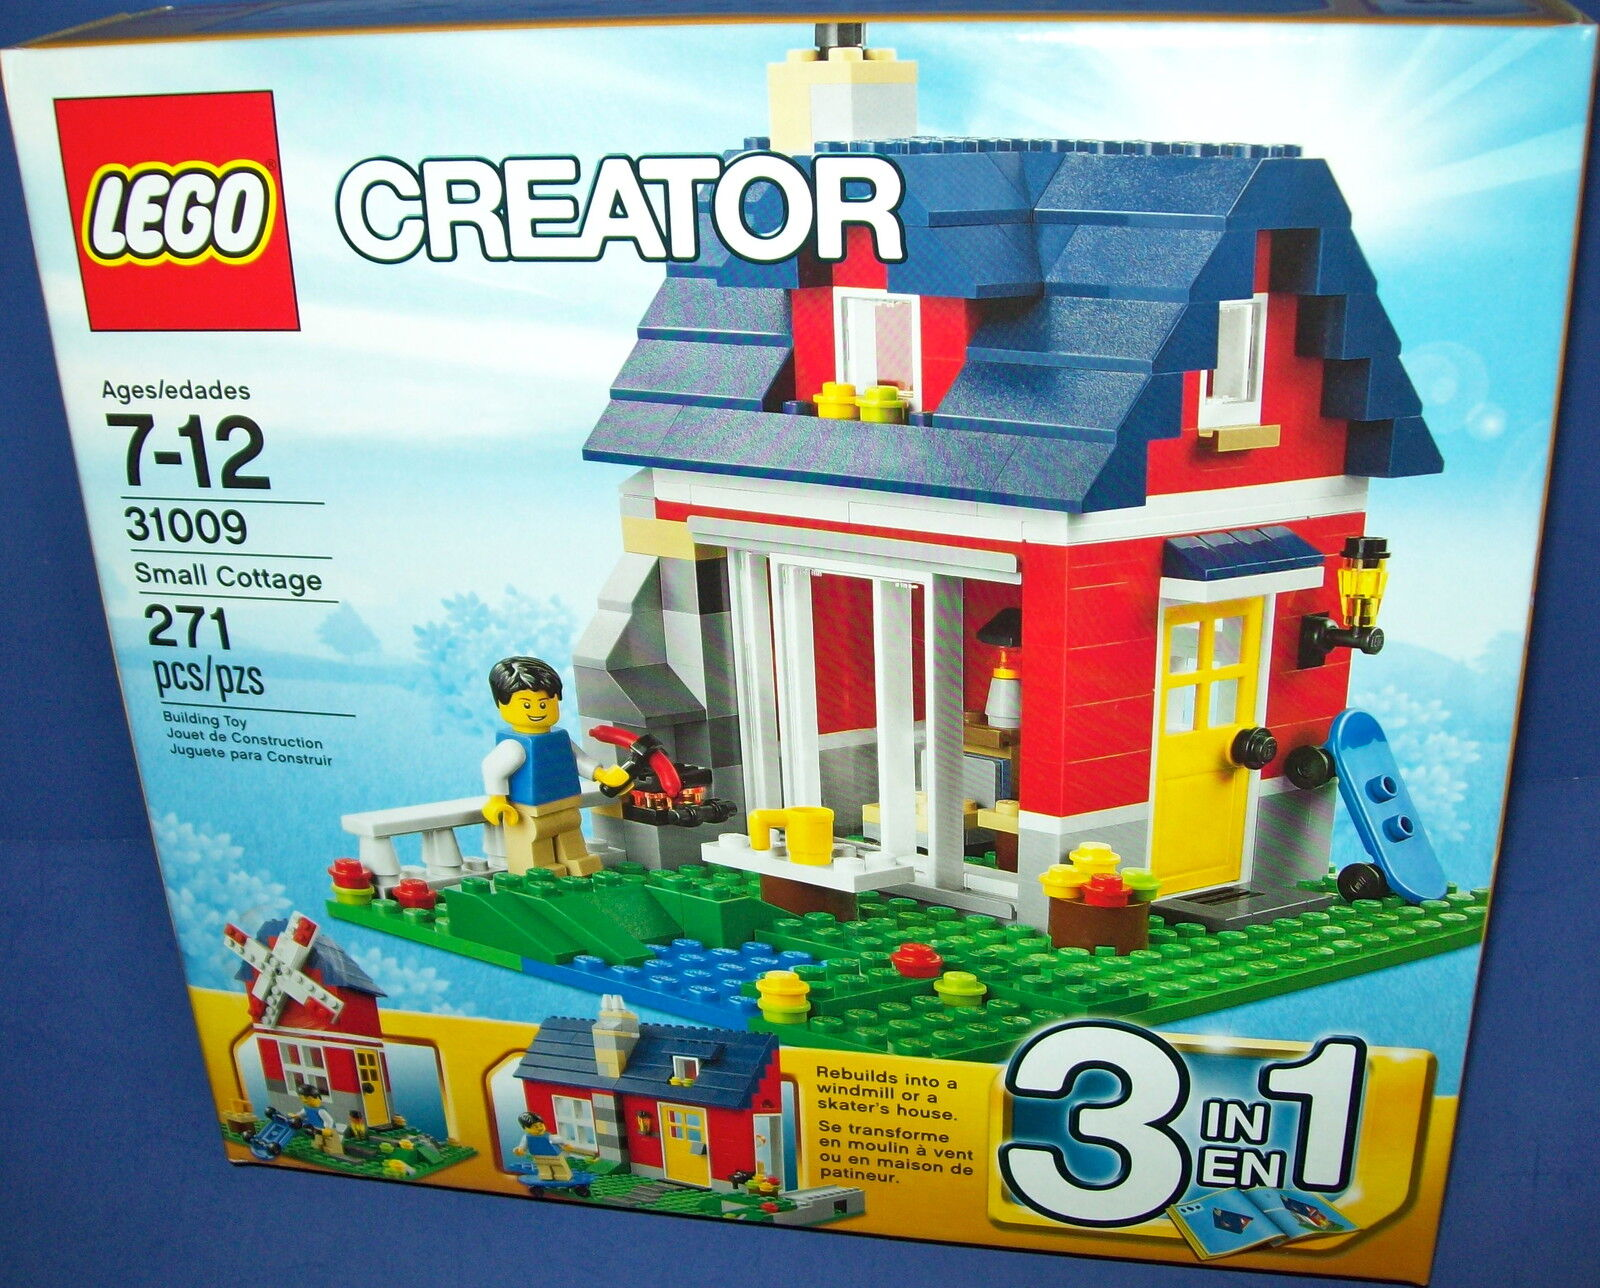 LEGO 31009 Creator 3 IN 1 SMALL COTTAGE 271pc builds windmill or skater's house